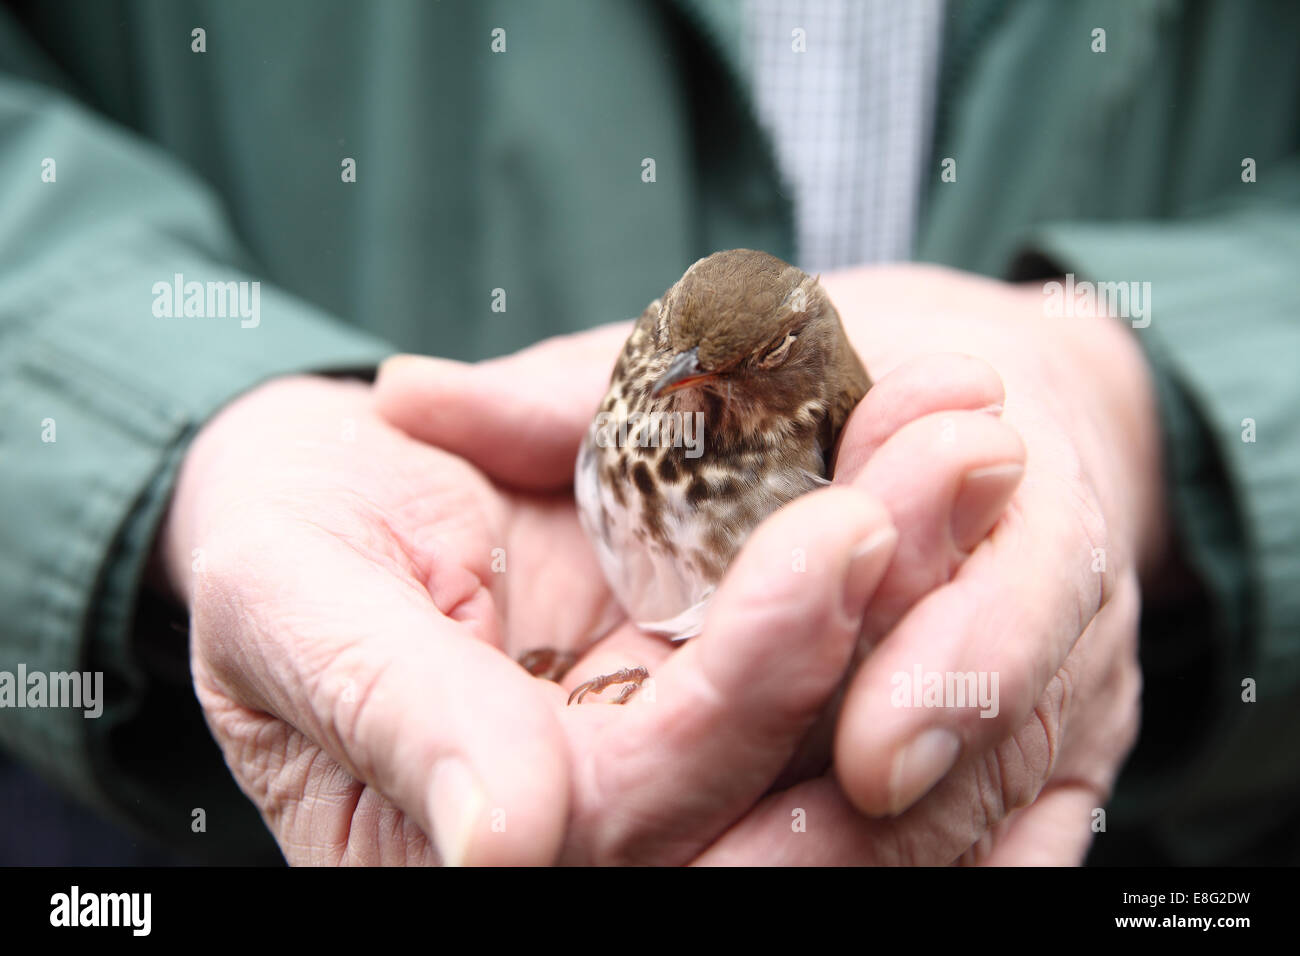 Rescued, stunned bird that flew into a window in a man's hands - Stock Image